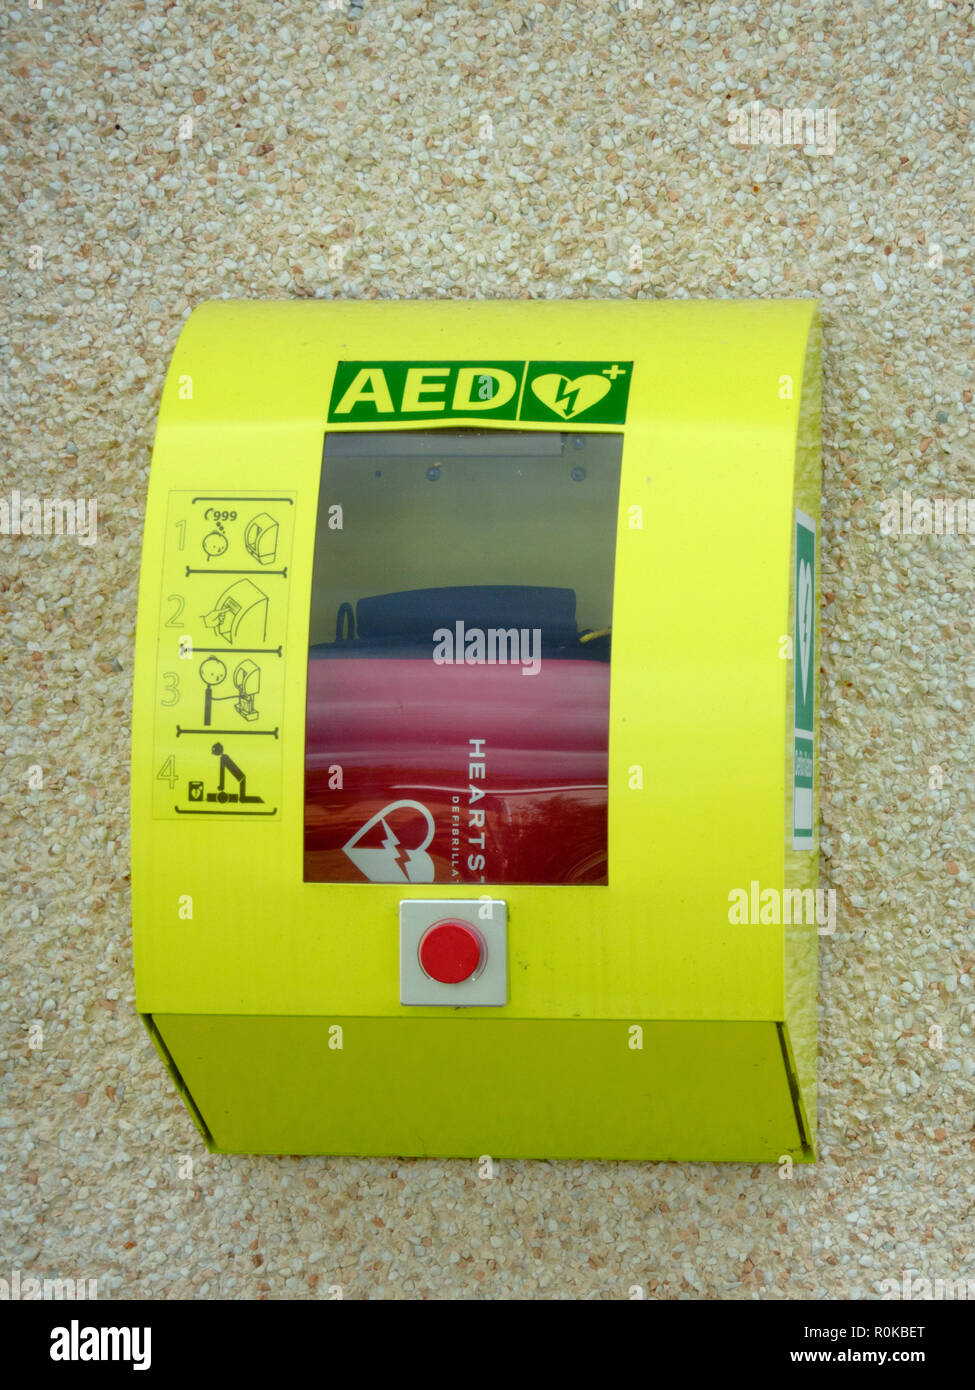 Defibrillator Medical Emergency Equipment Mounted on a n Outside Wall, UK - Stock Image